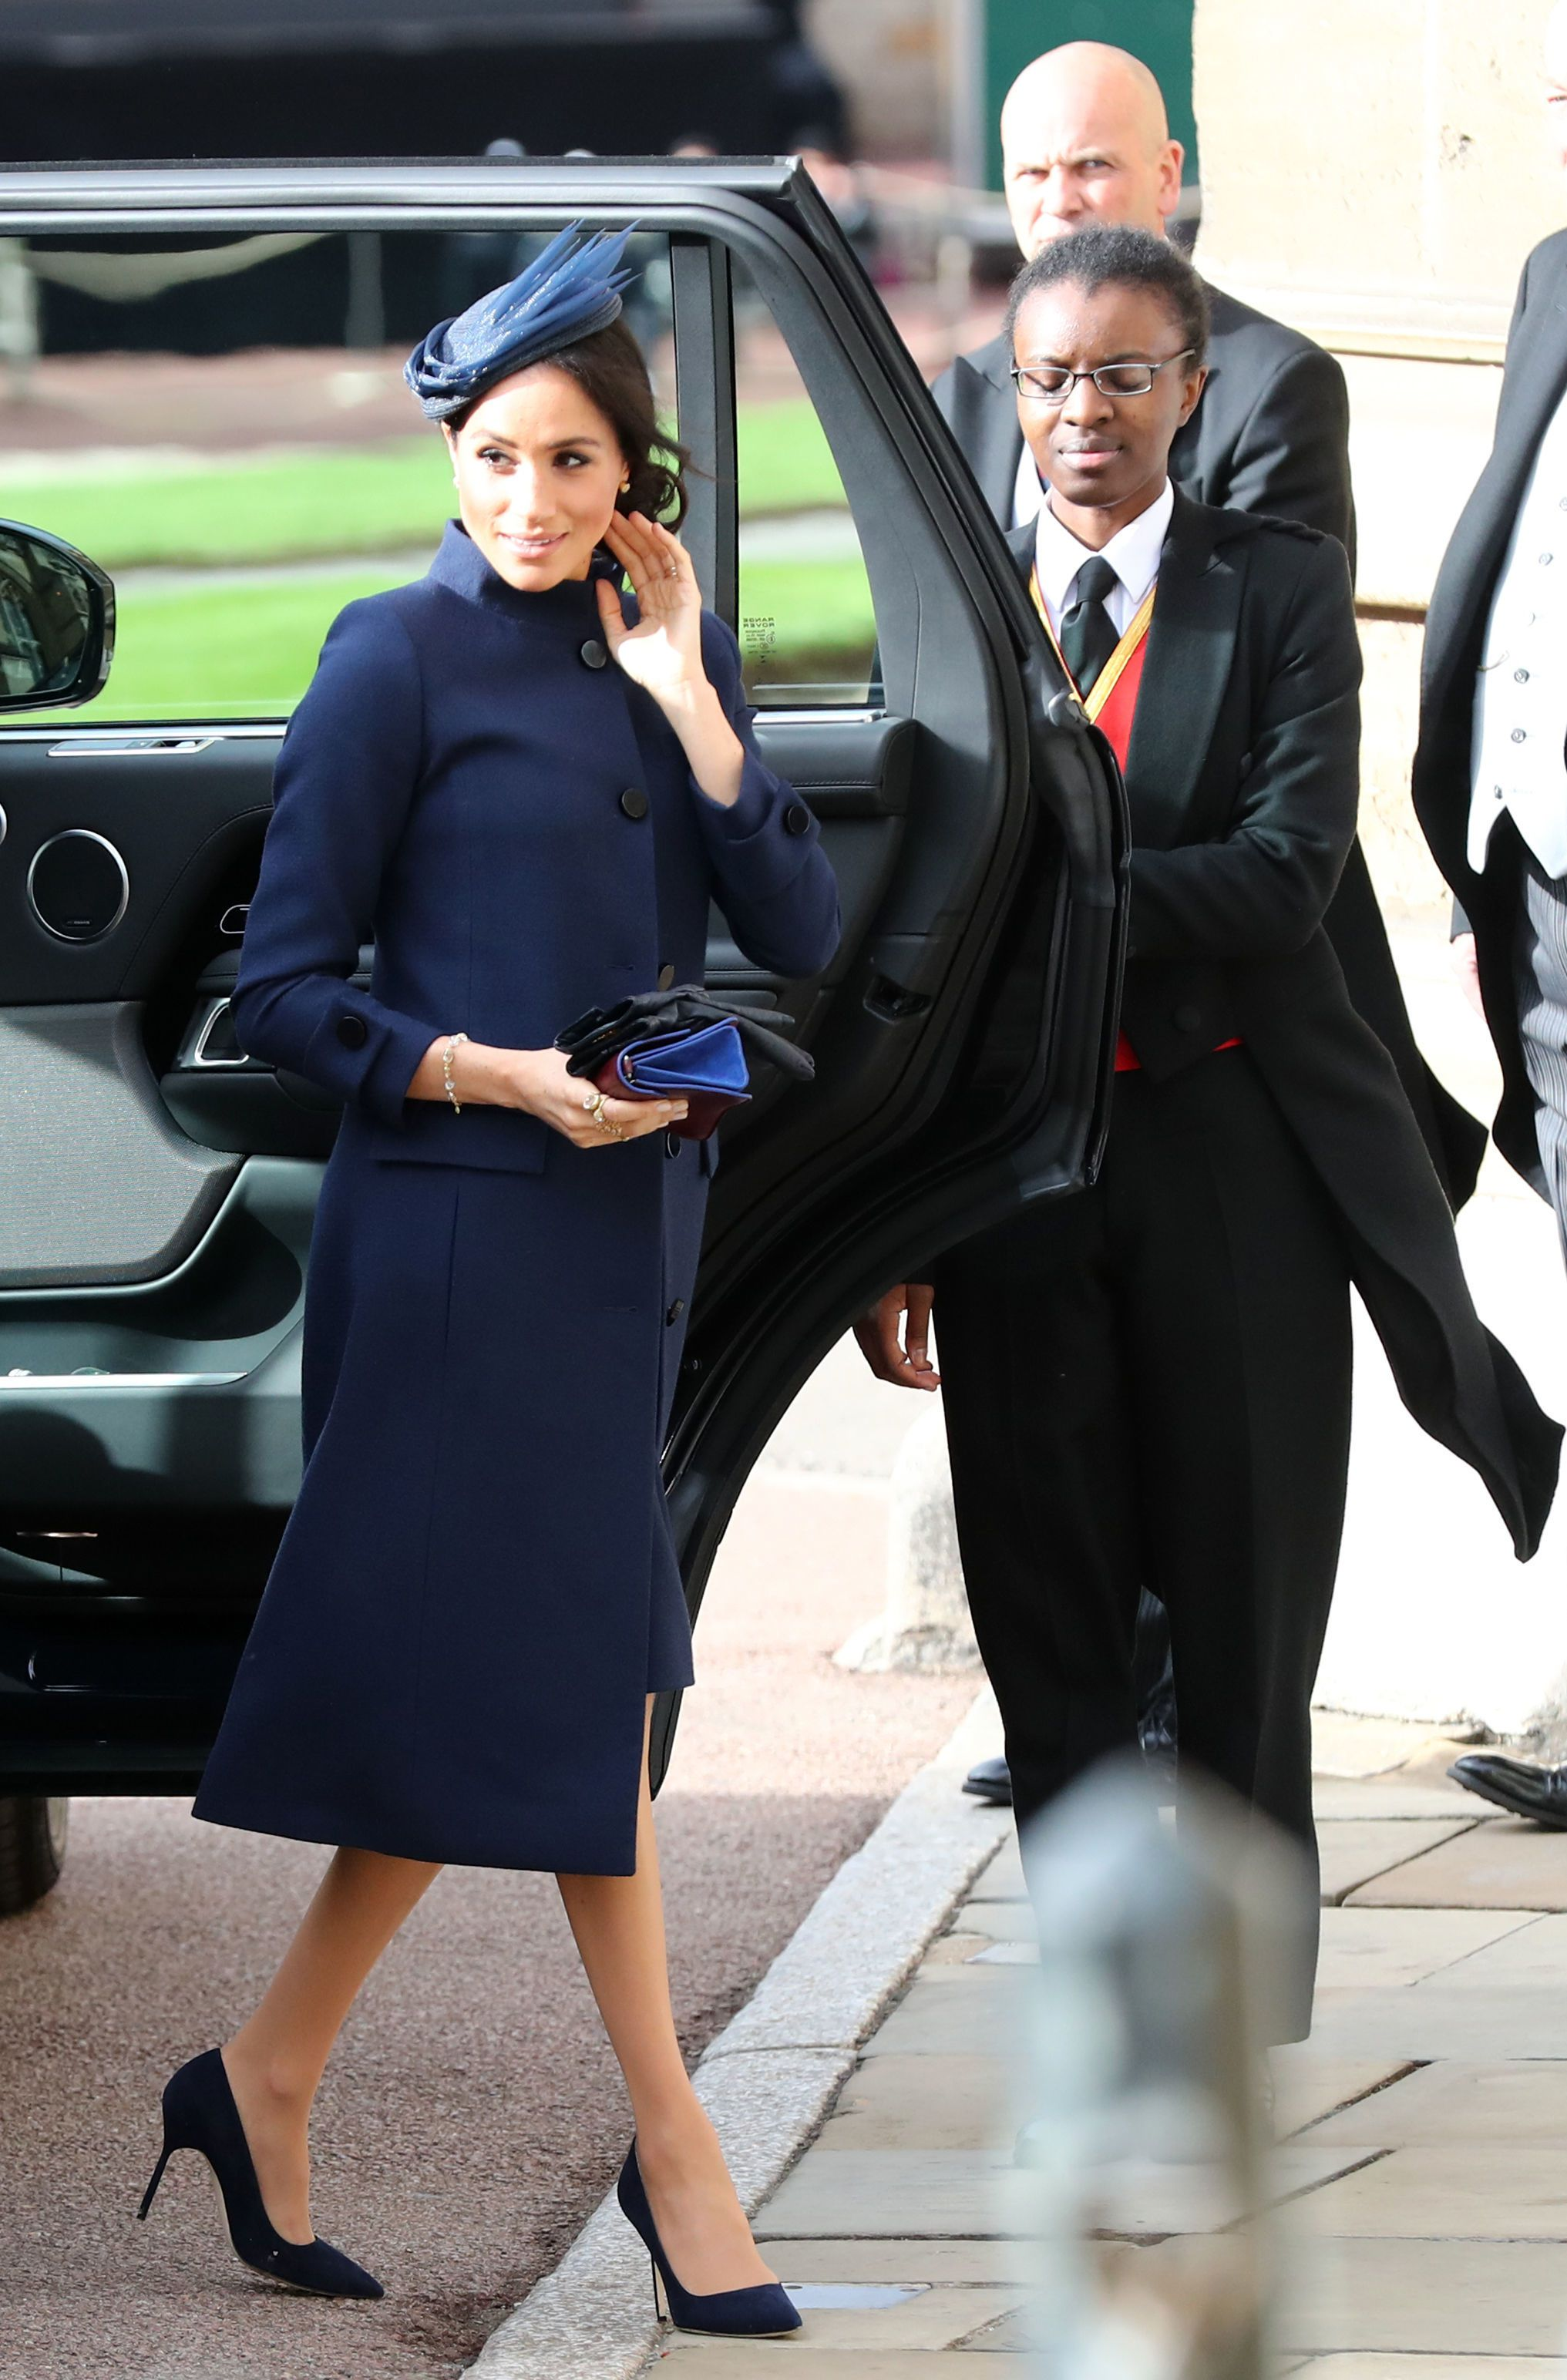 Why people think Meghan Markle is pregnant after her appearance at Eugenie